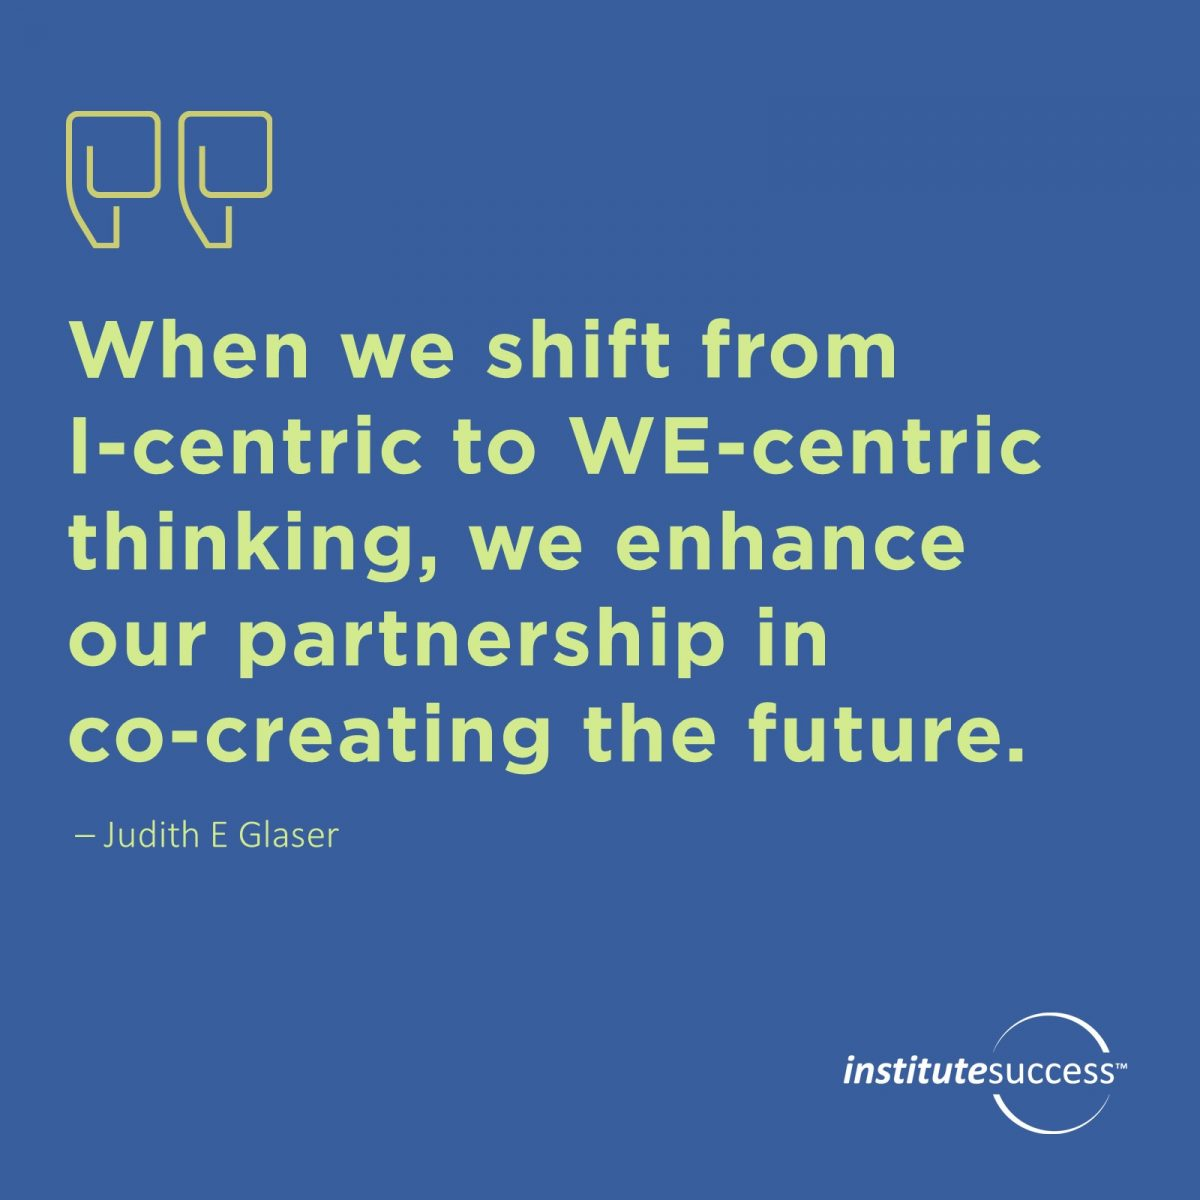 When we shift from I-centric to WE-centric thinking, we enhance our partnership in co-creating the future. 	Judith E. Glaser